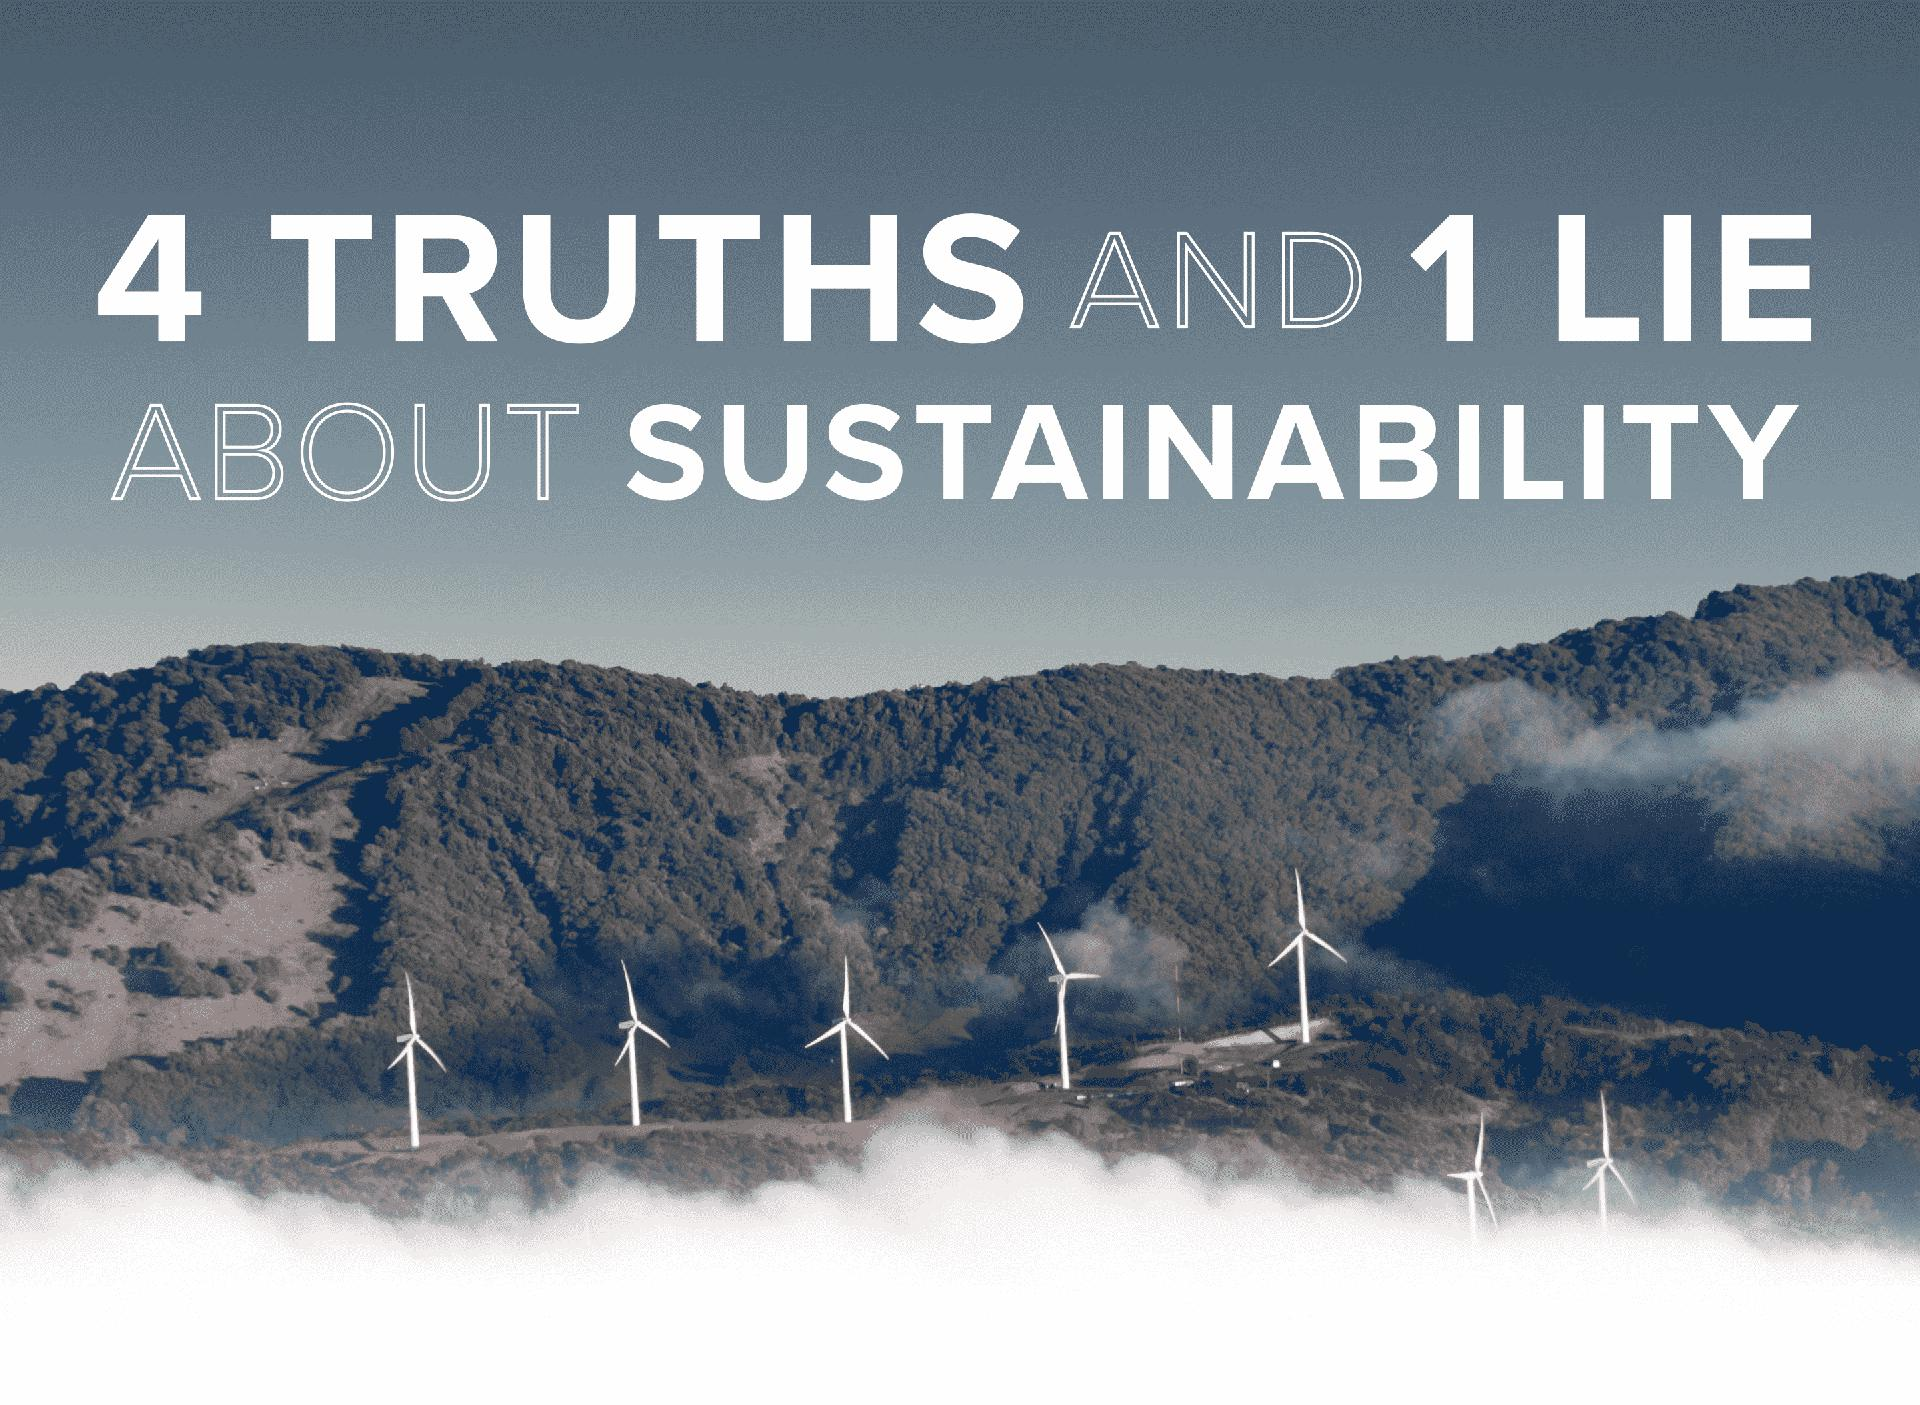 4 Truths And 1 Lie About Sustainability